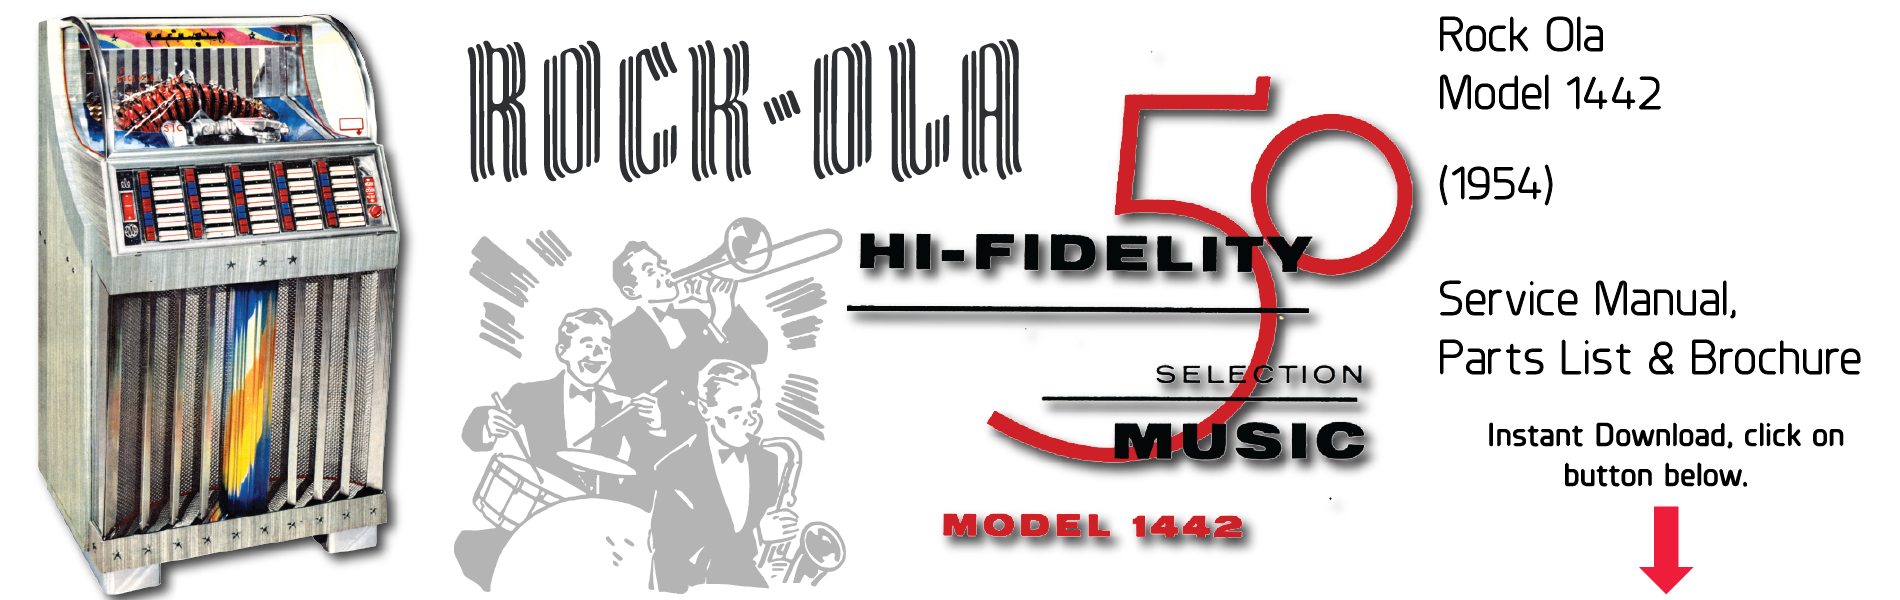 Rock-Ola 1442 (1954) Amplifier Schematics & Brochures